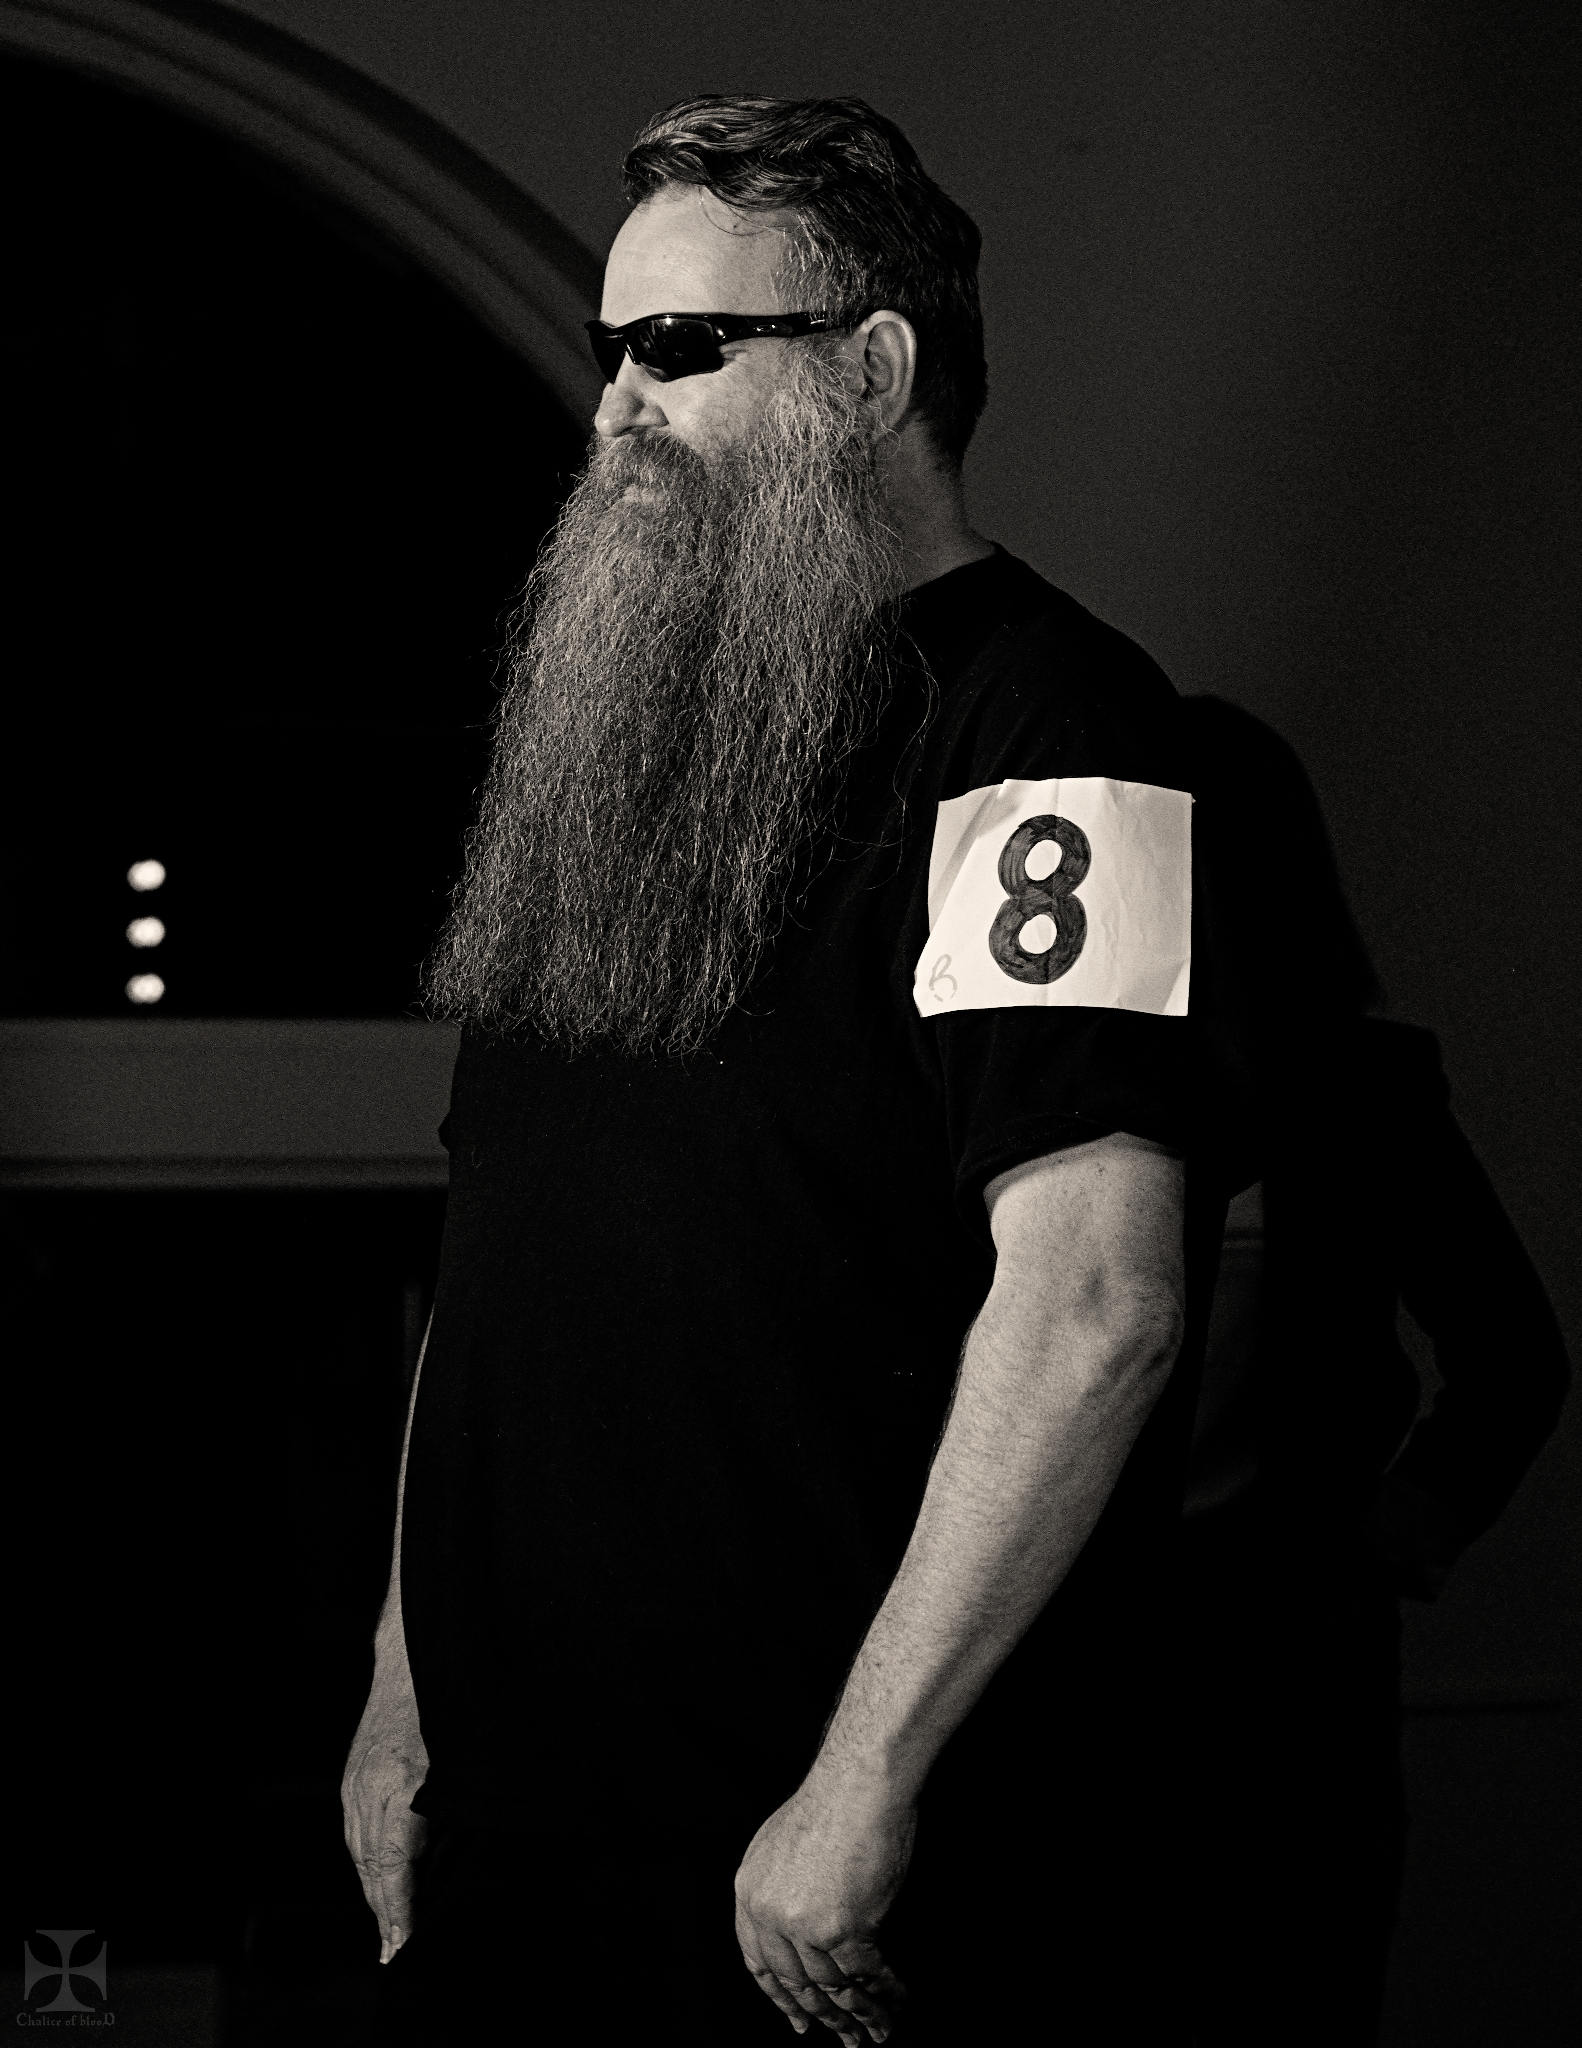 2018.09 5th Beard and Moustache Competition - 0237-Exposure.jpg